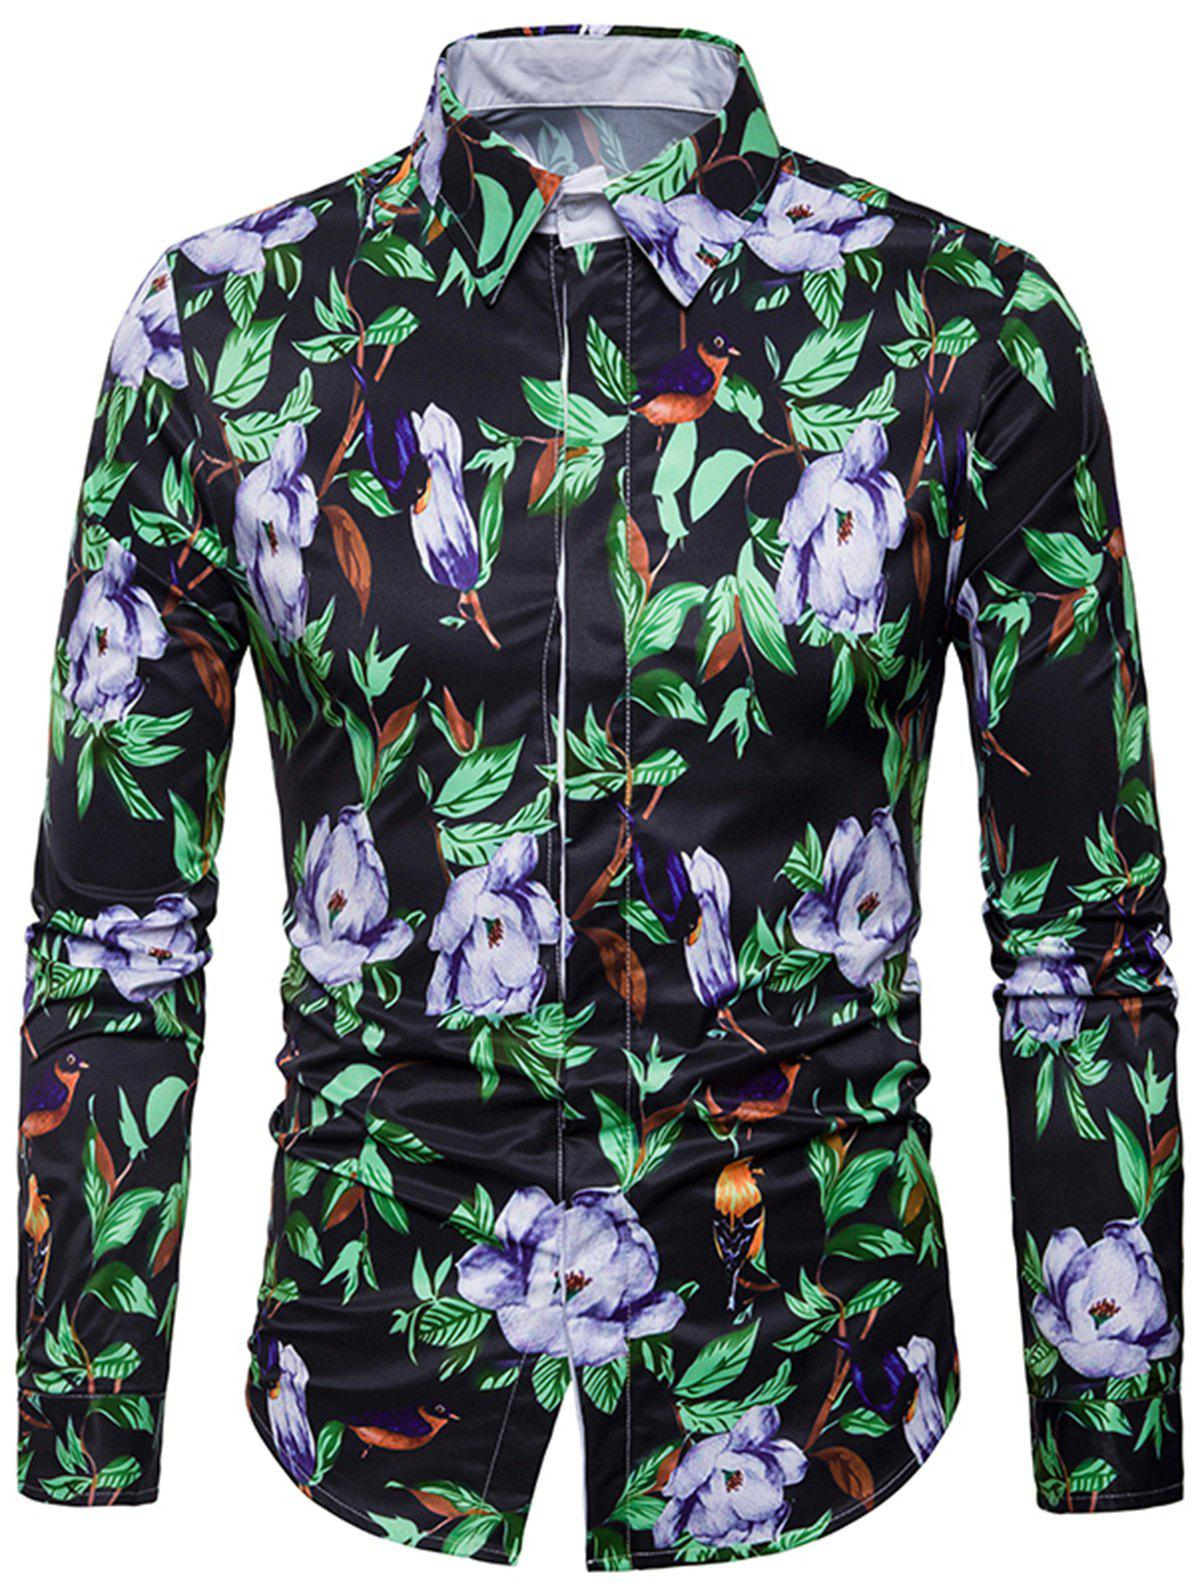 3D Florals Leaves Print Cover Placket Shirt